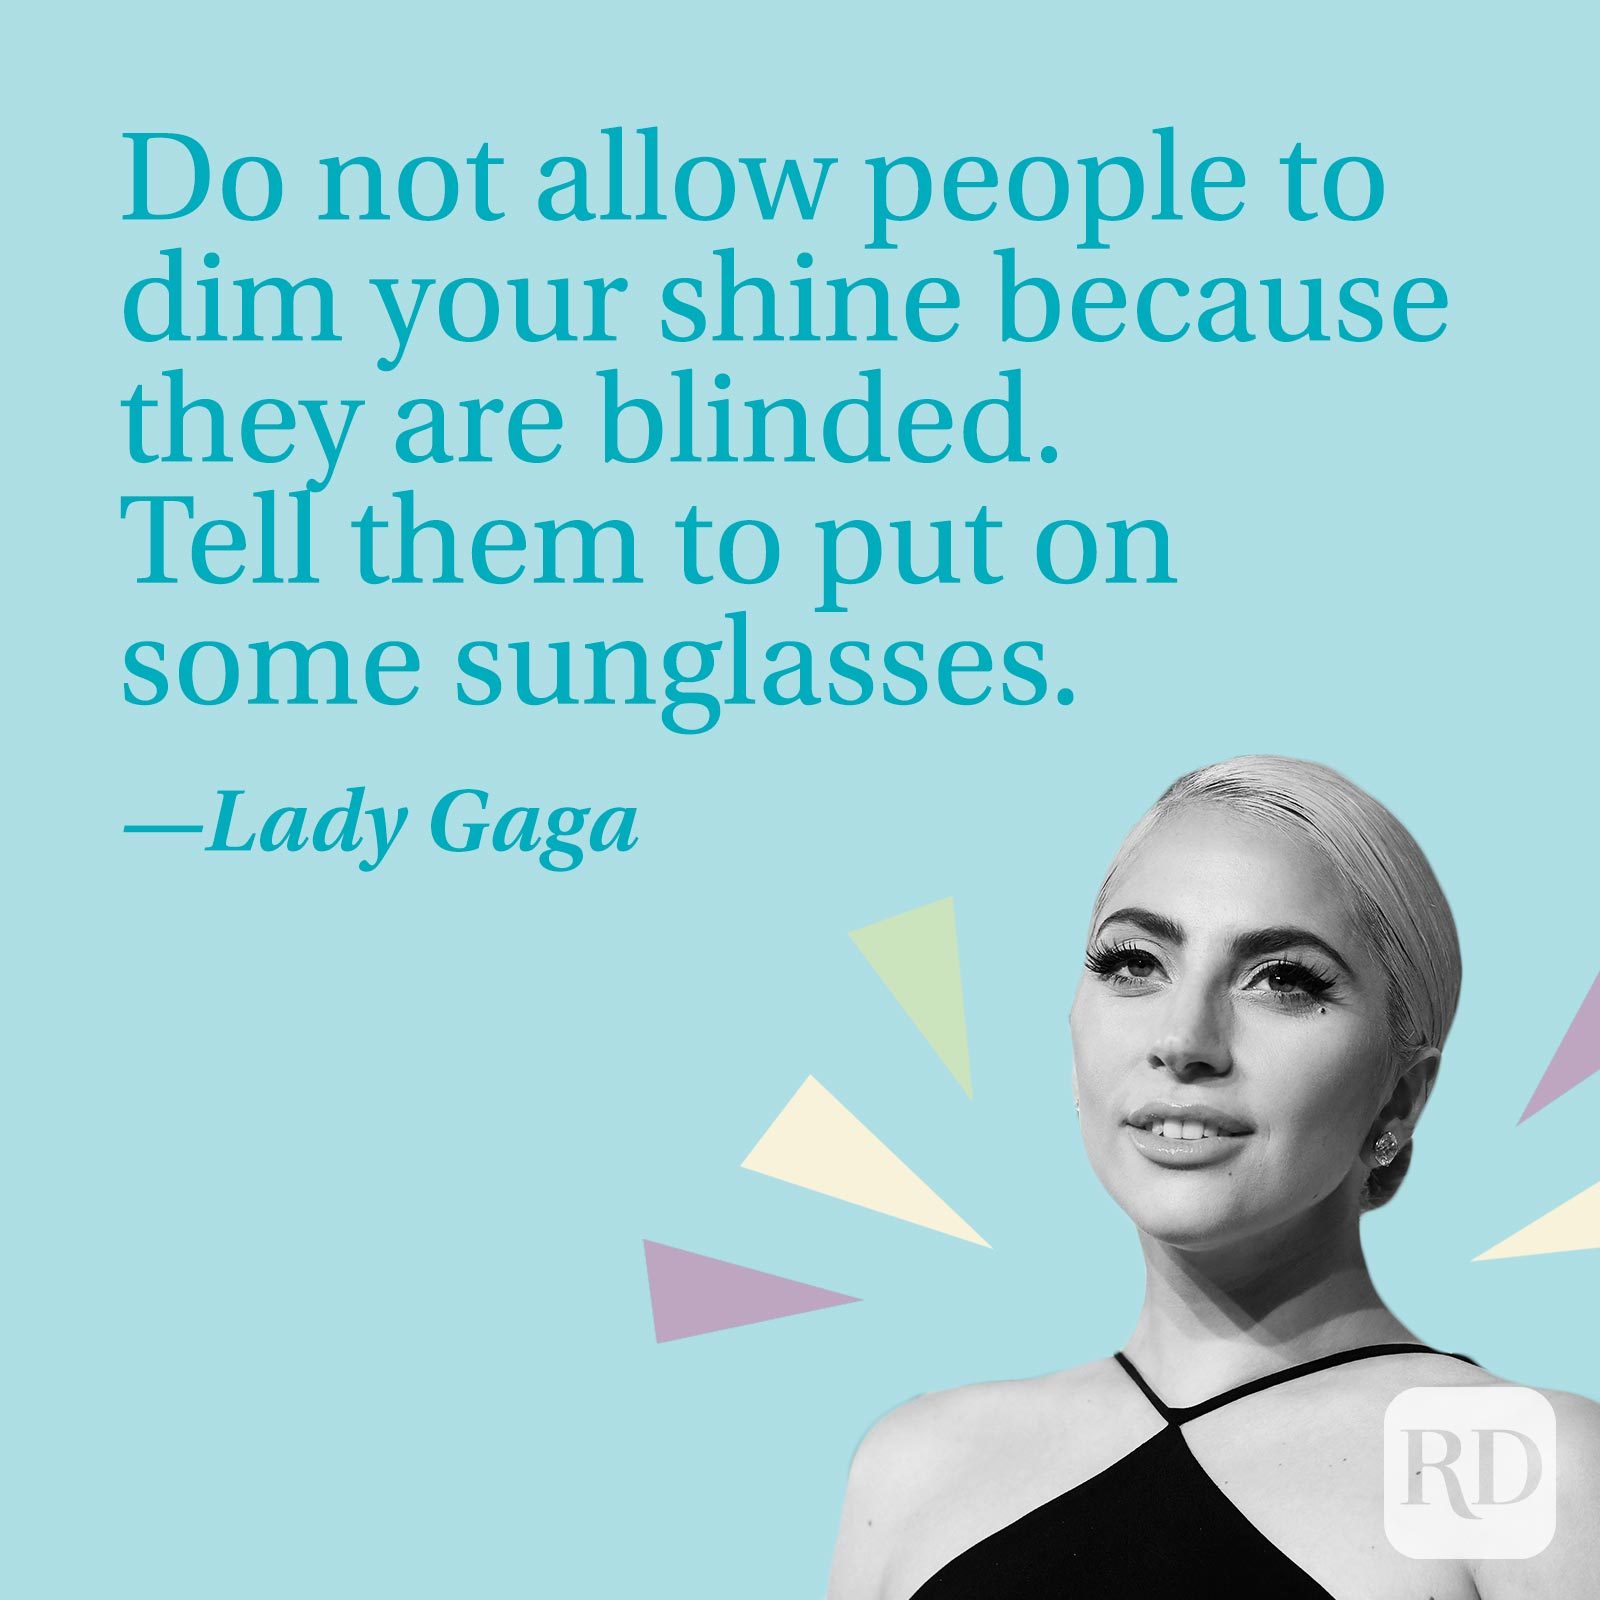 Do not allow people to dim your shine because they are blinded. Tell them to put on some sunglasses.—Lady Gaga